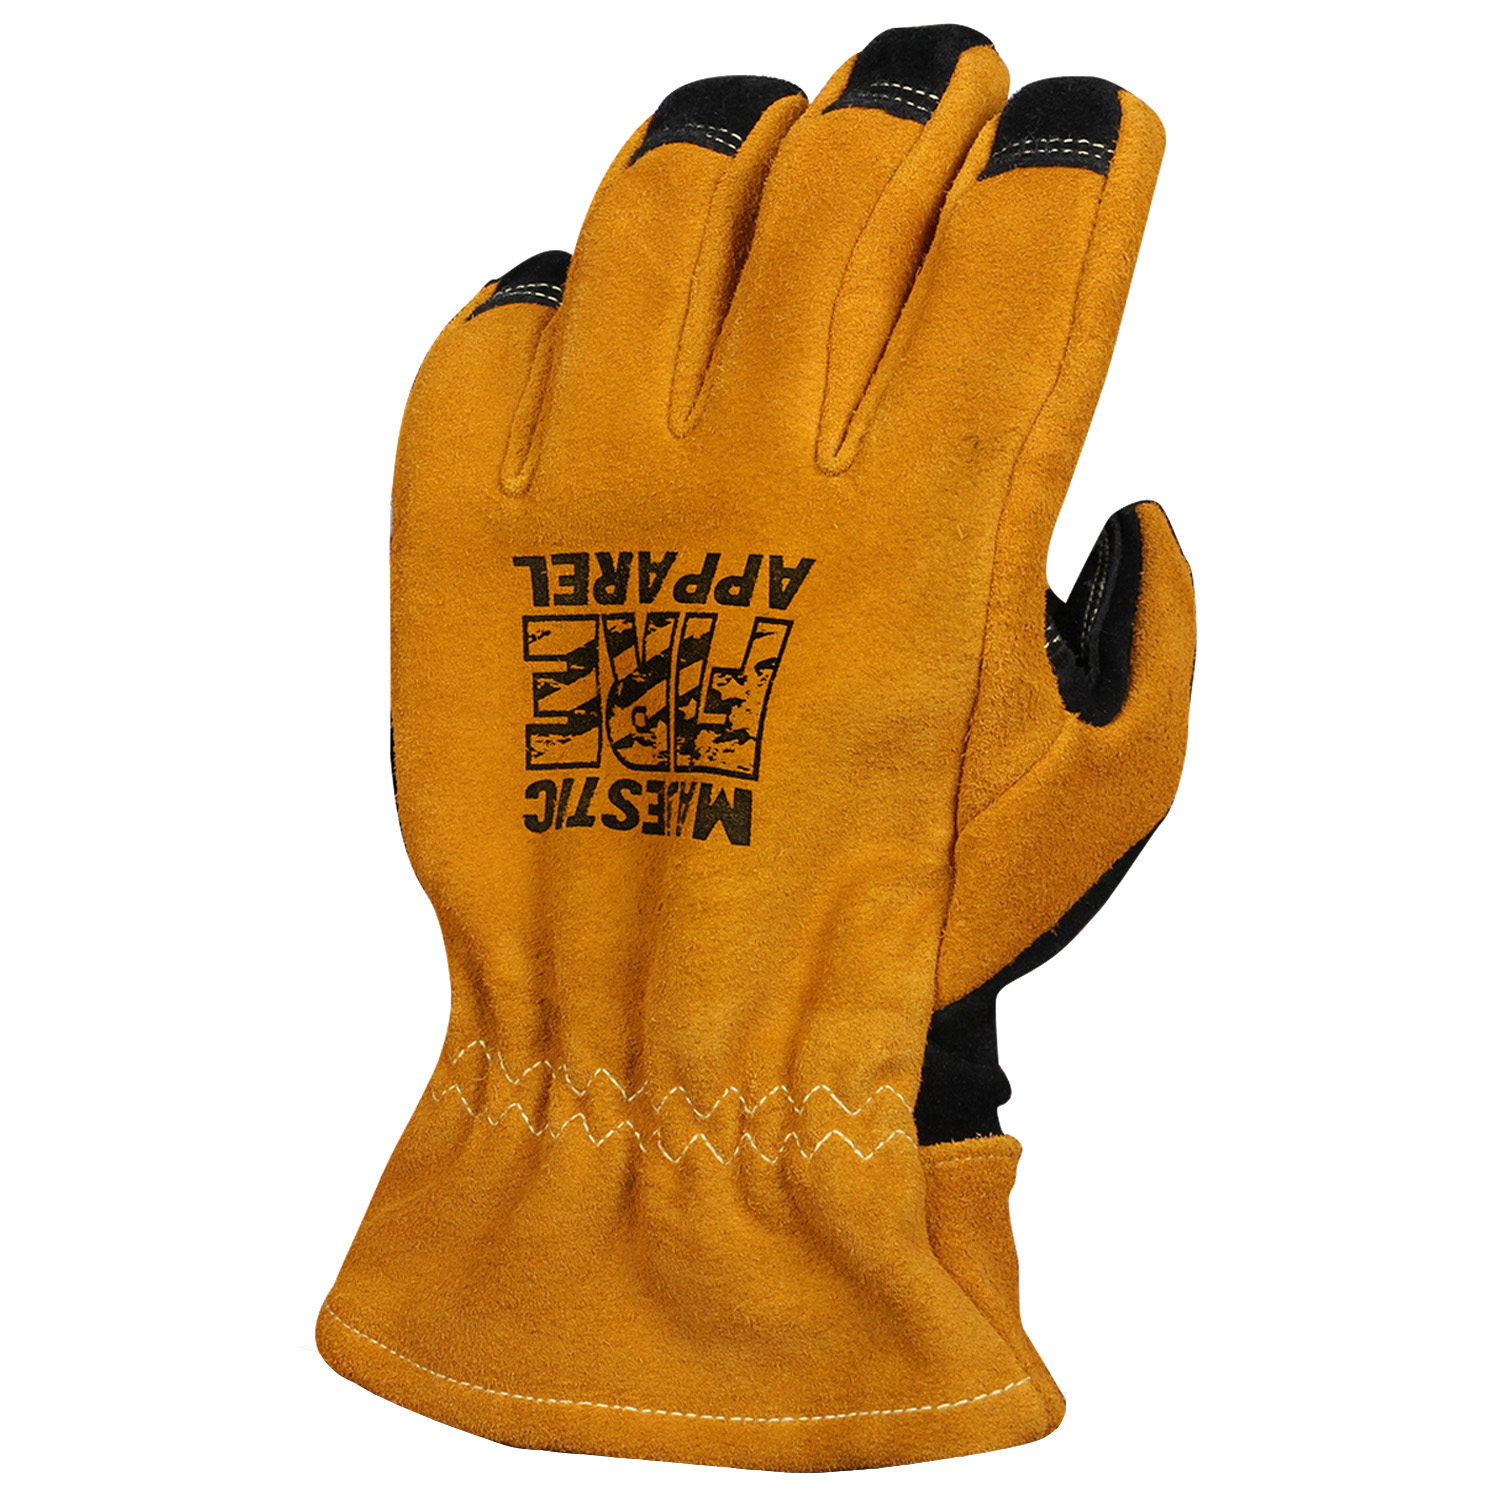 Majestic Fire Apparel Gauntlet Style Fire Gloves Top